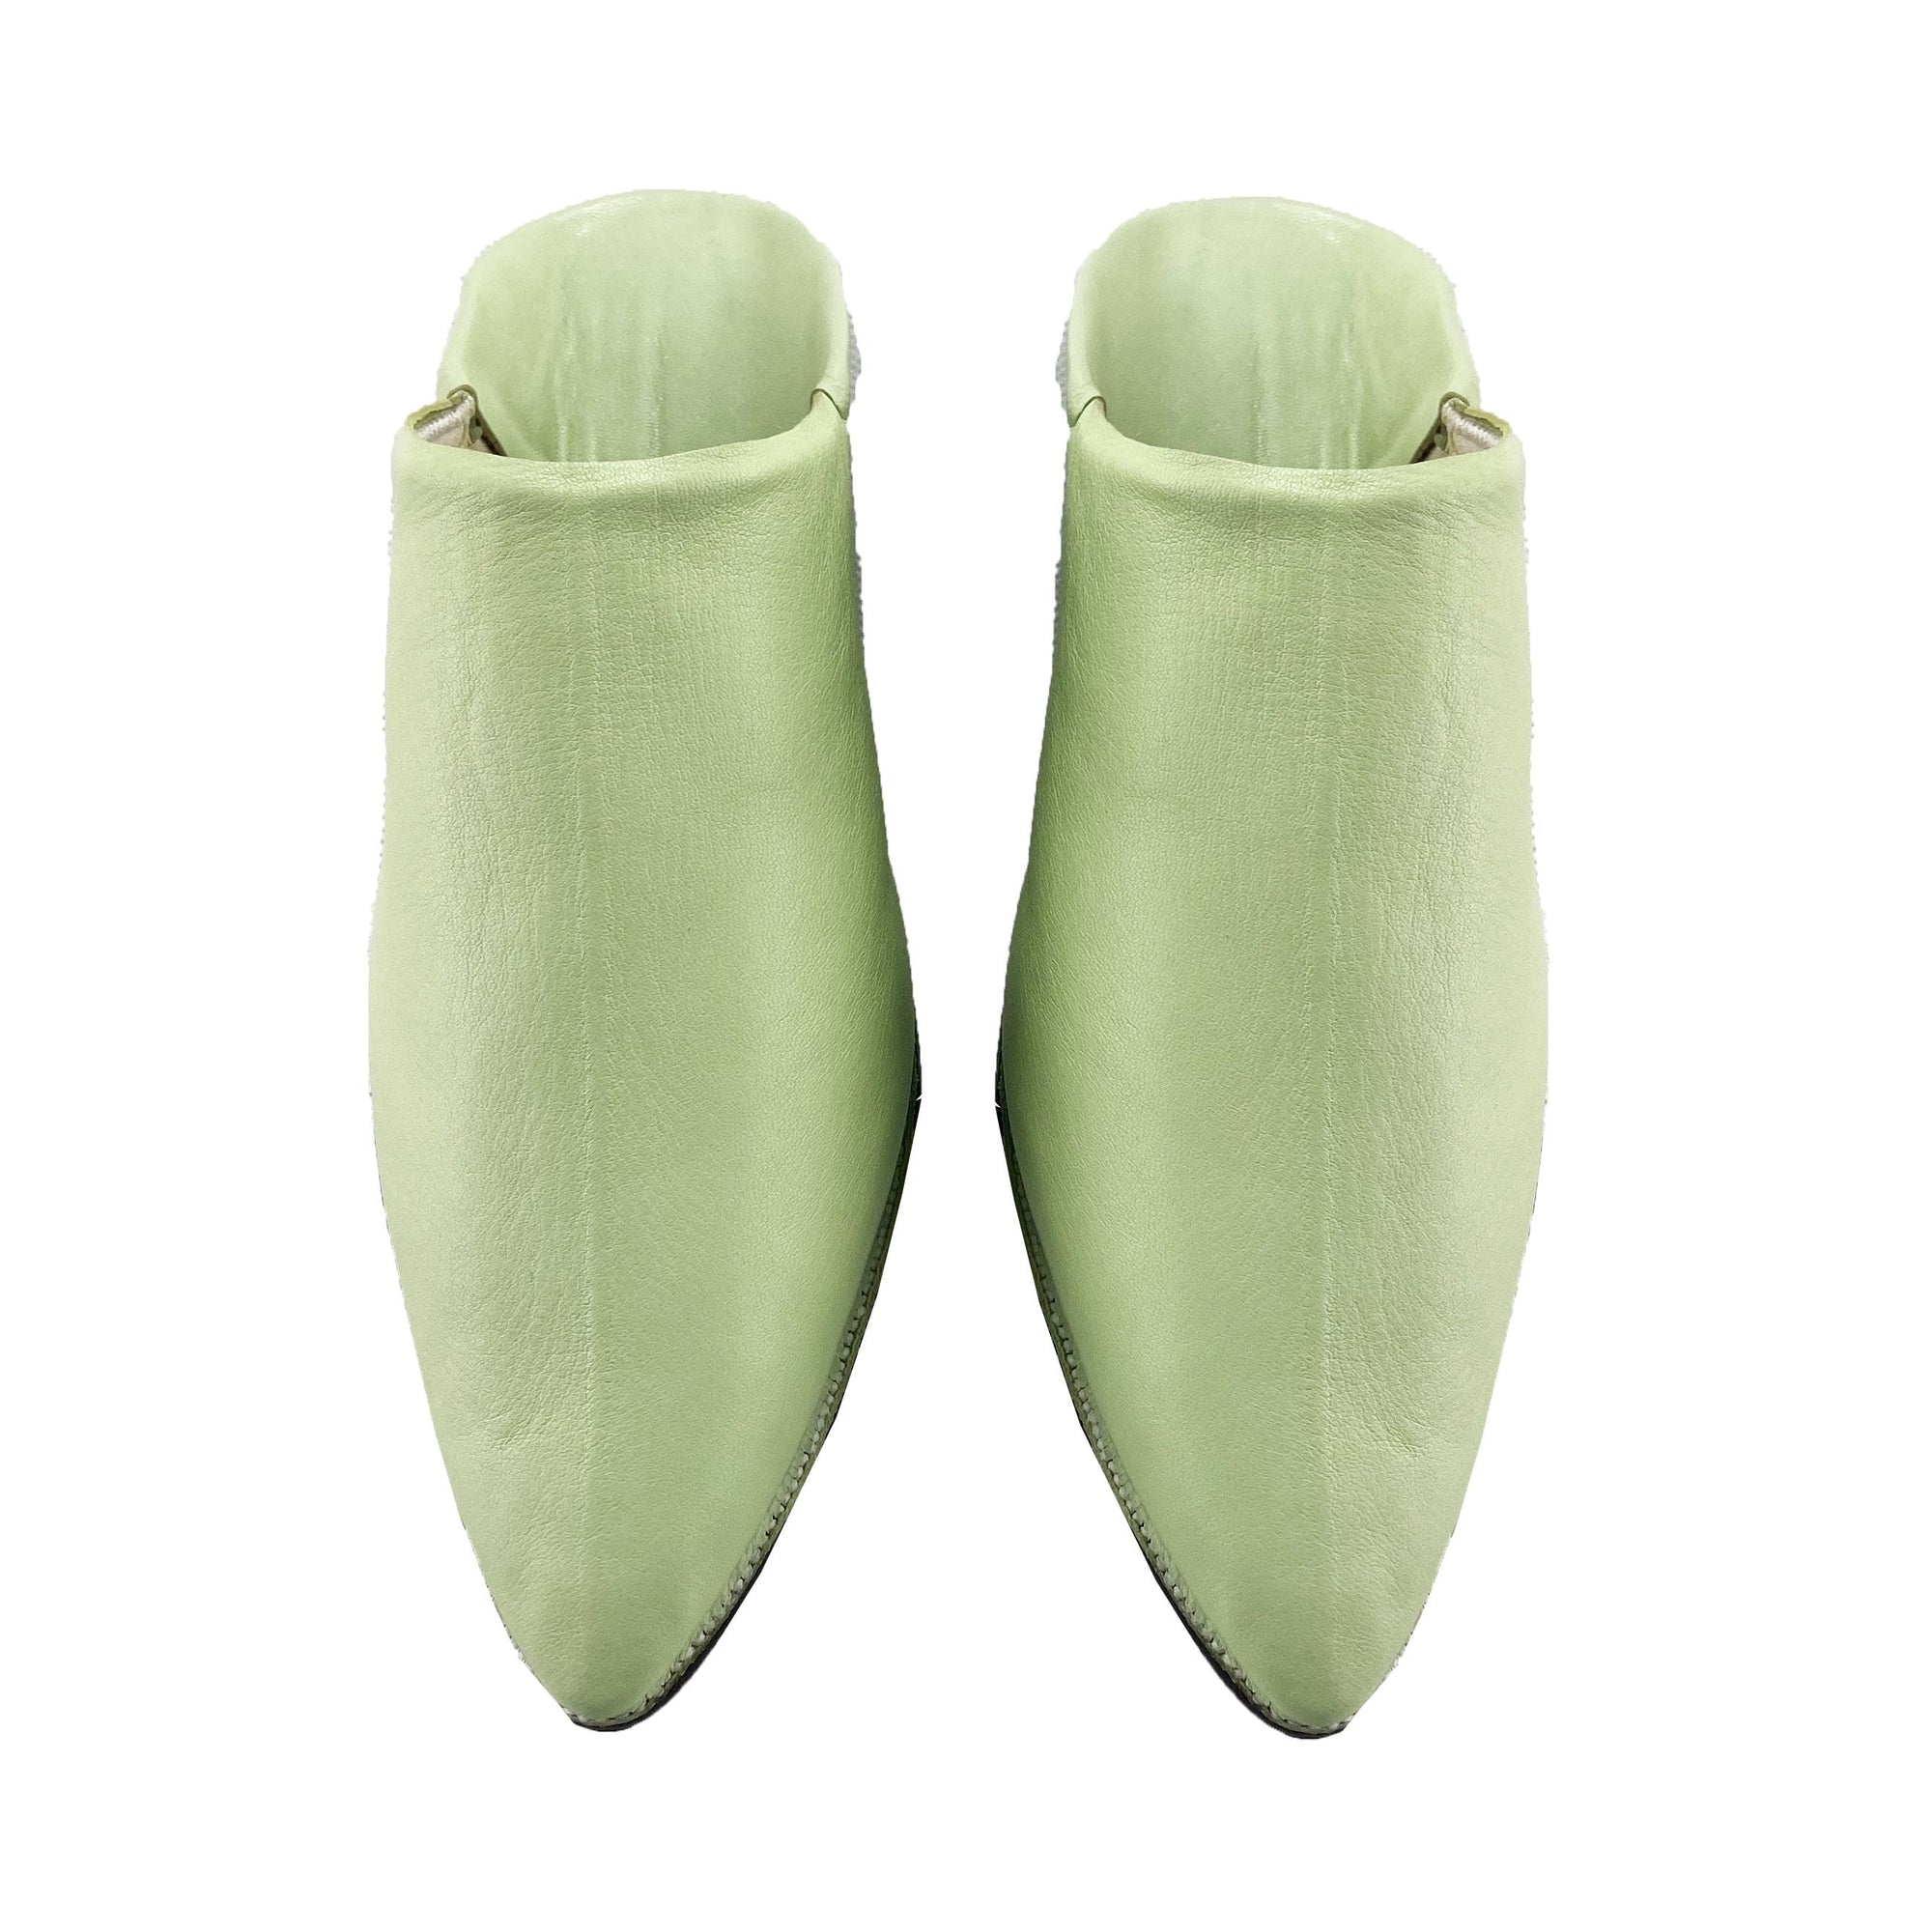 Jah Men Moroccan Slipper in Pistachio Green Leather